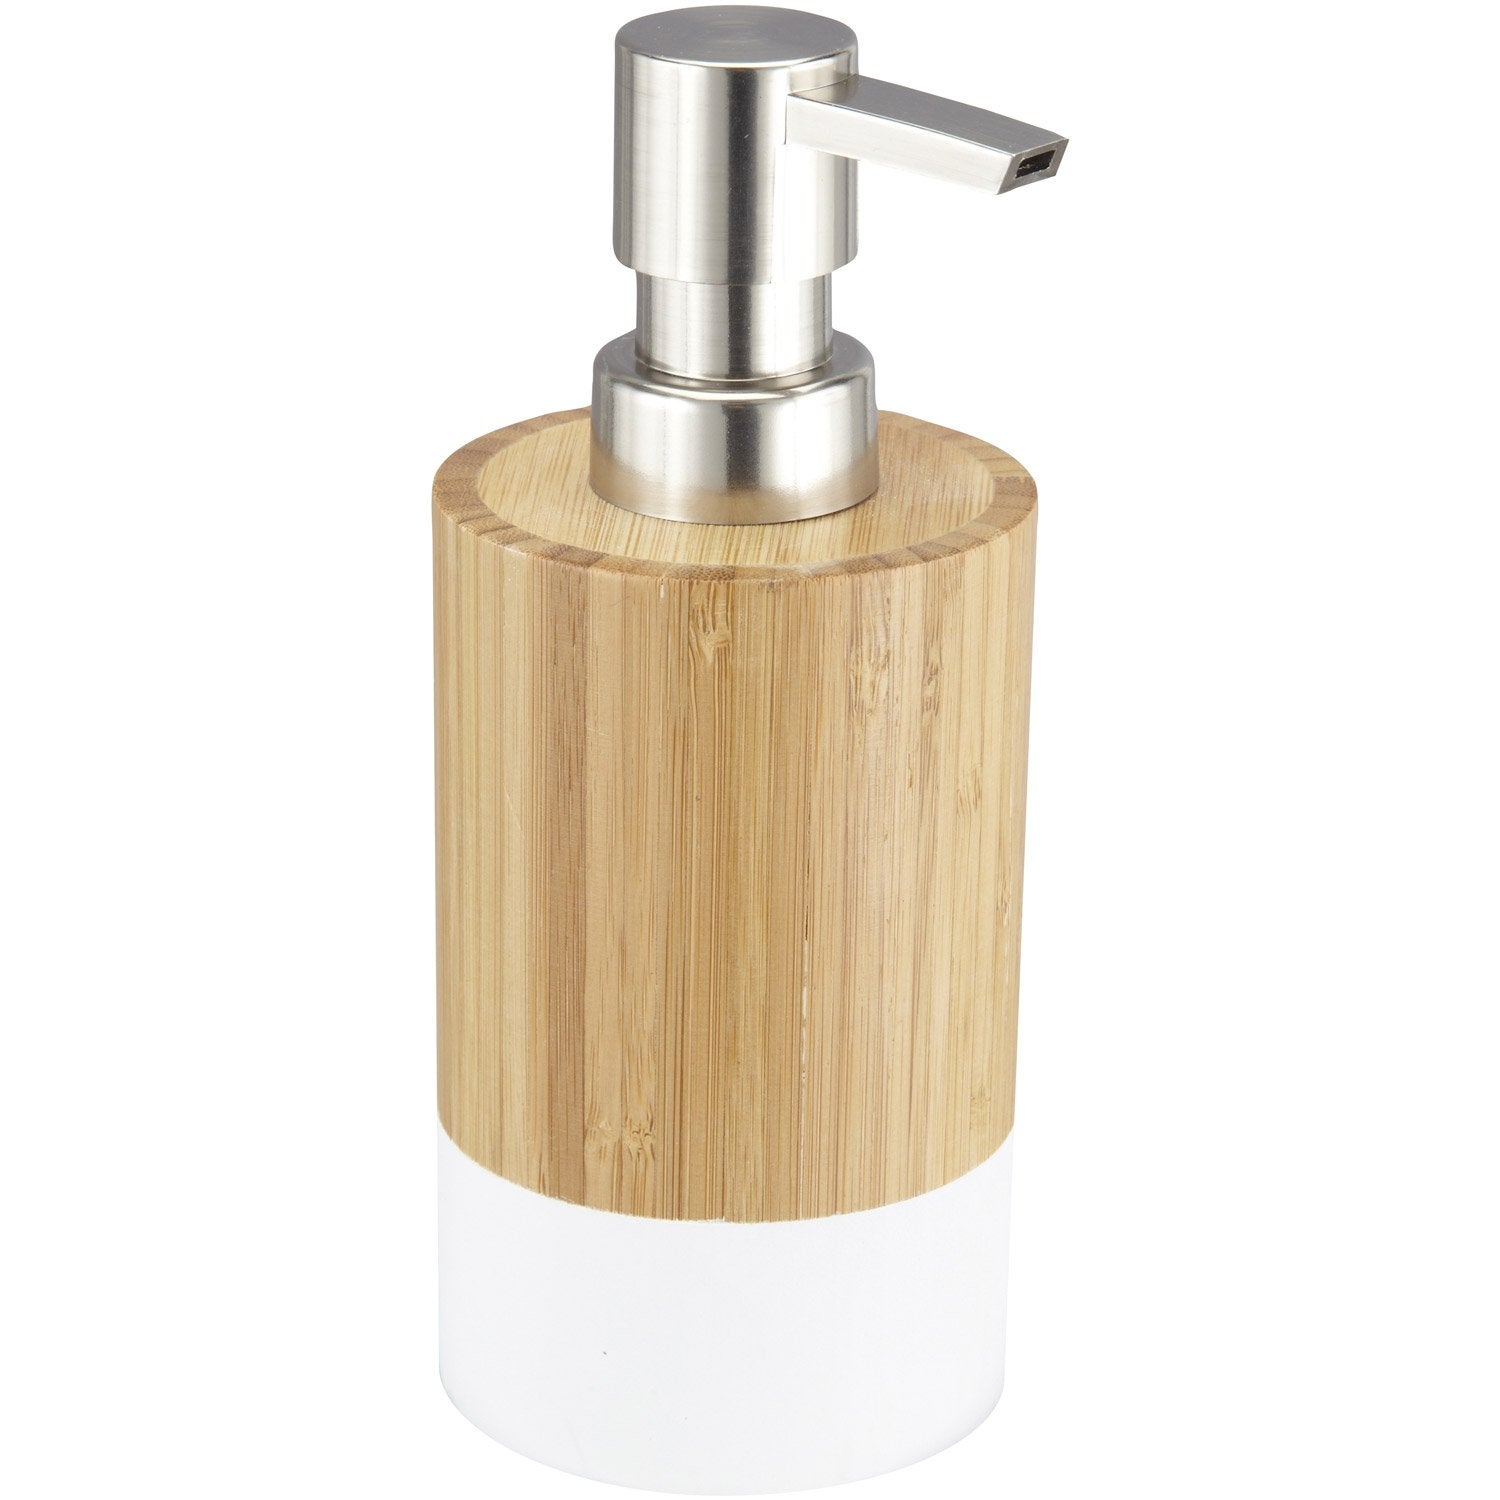 Distributeur de savon james blanc blanc 0 leroy merlin for Porte en solde